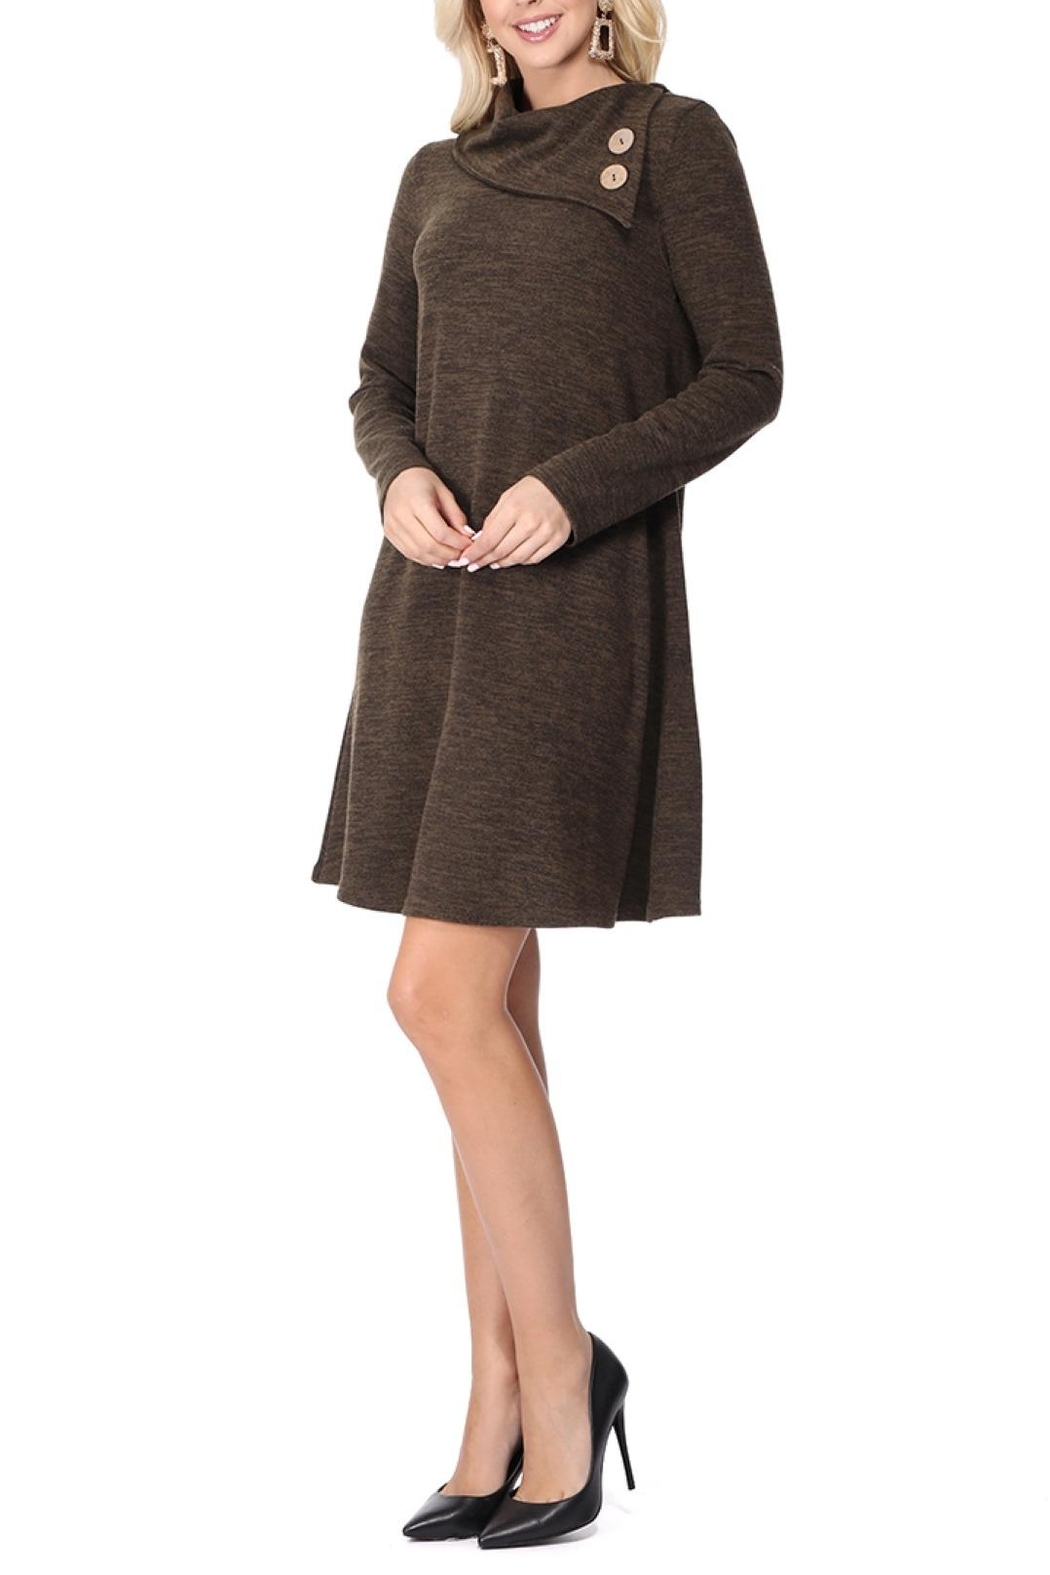 Aryeh Dark Olive Cowl Neck Knit Dress - Front Full Image